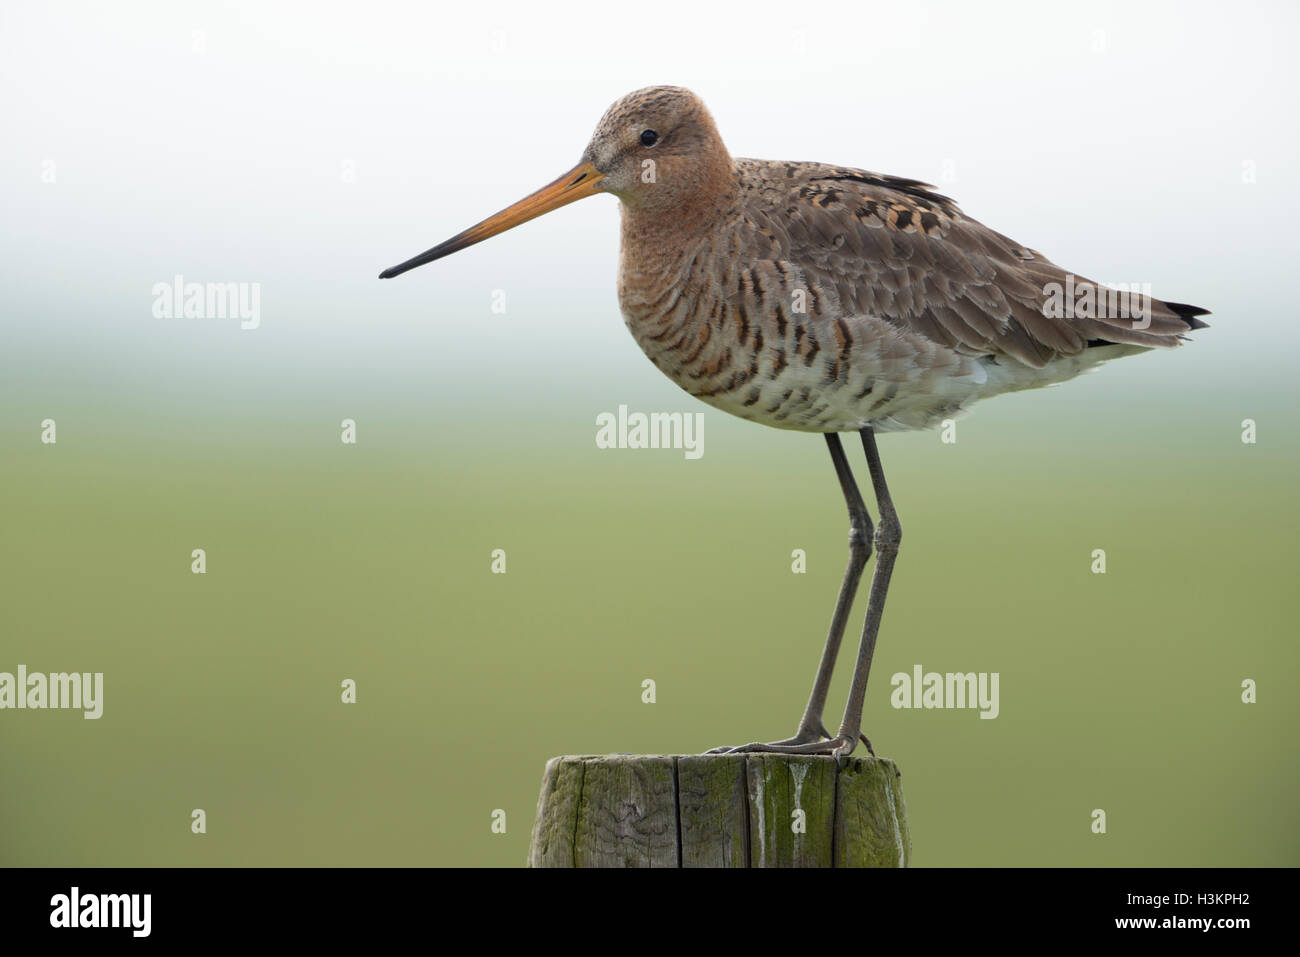 Black-tailed Godwit / Uferschnepfe ( Limosa limosa), breeding plumage, on fence post, close-up, characteristic wader - Stock Image